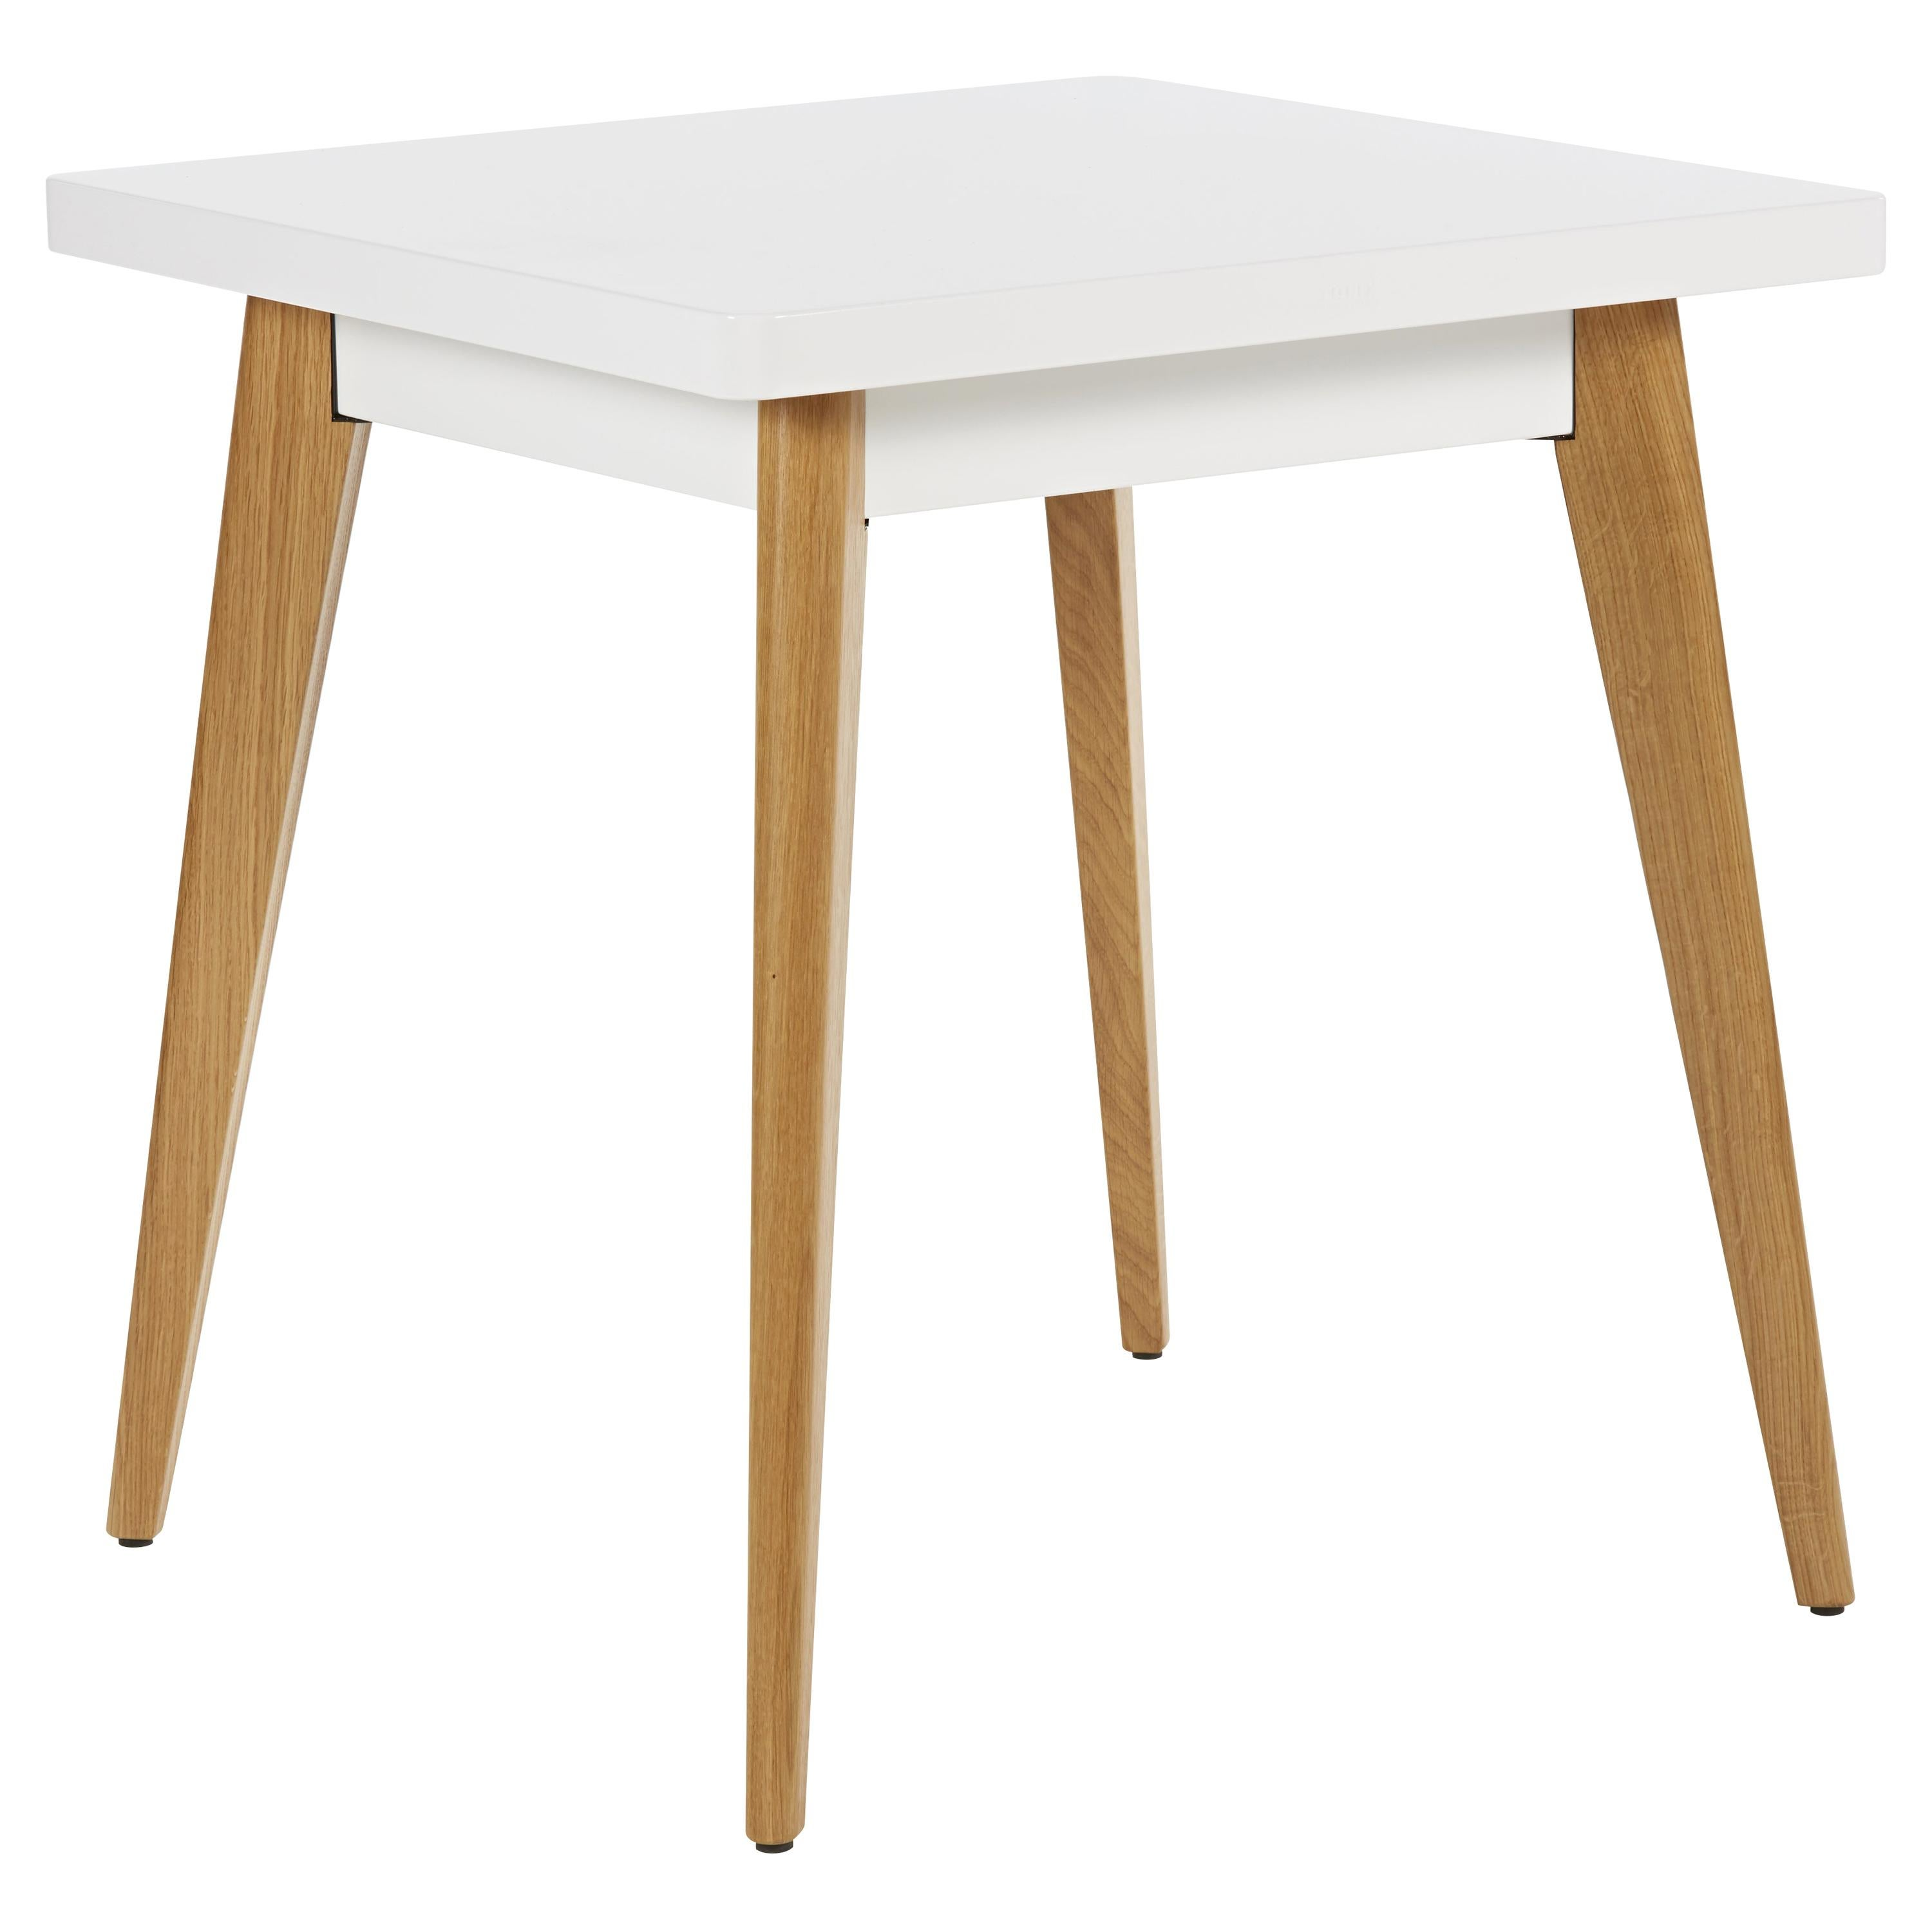 Table 55 70x70 Outdoor in White with Wooden Legs by Tolix, US